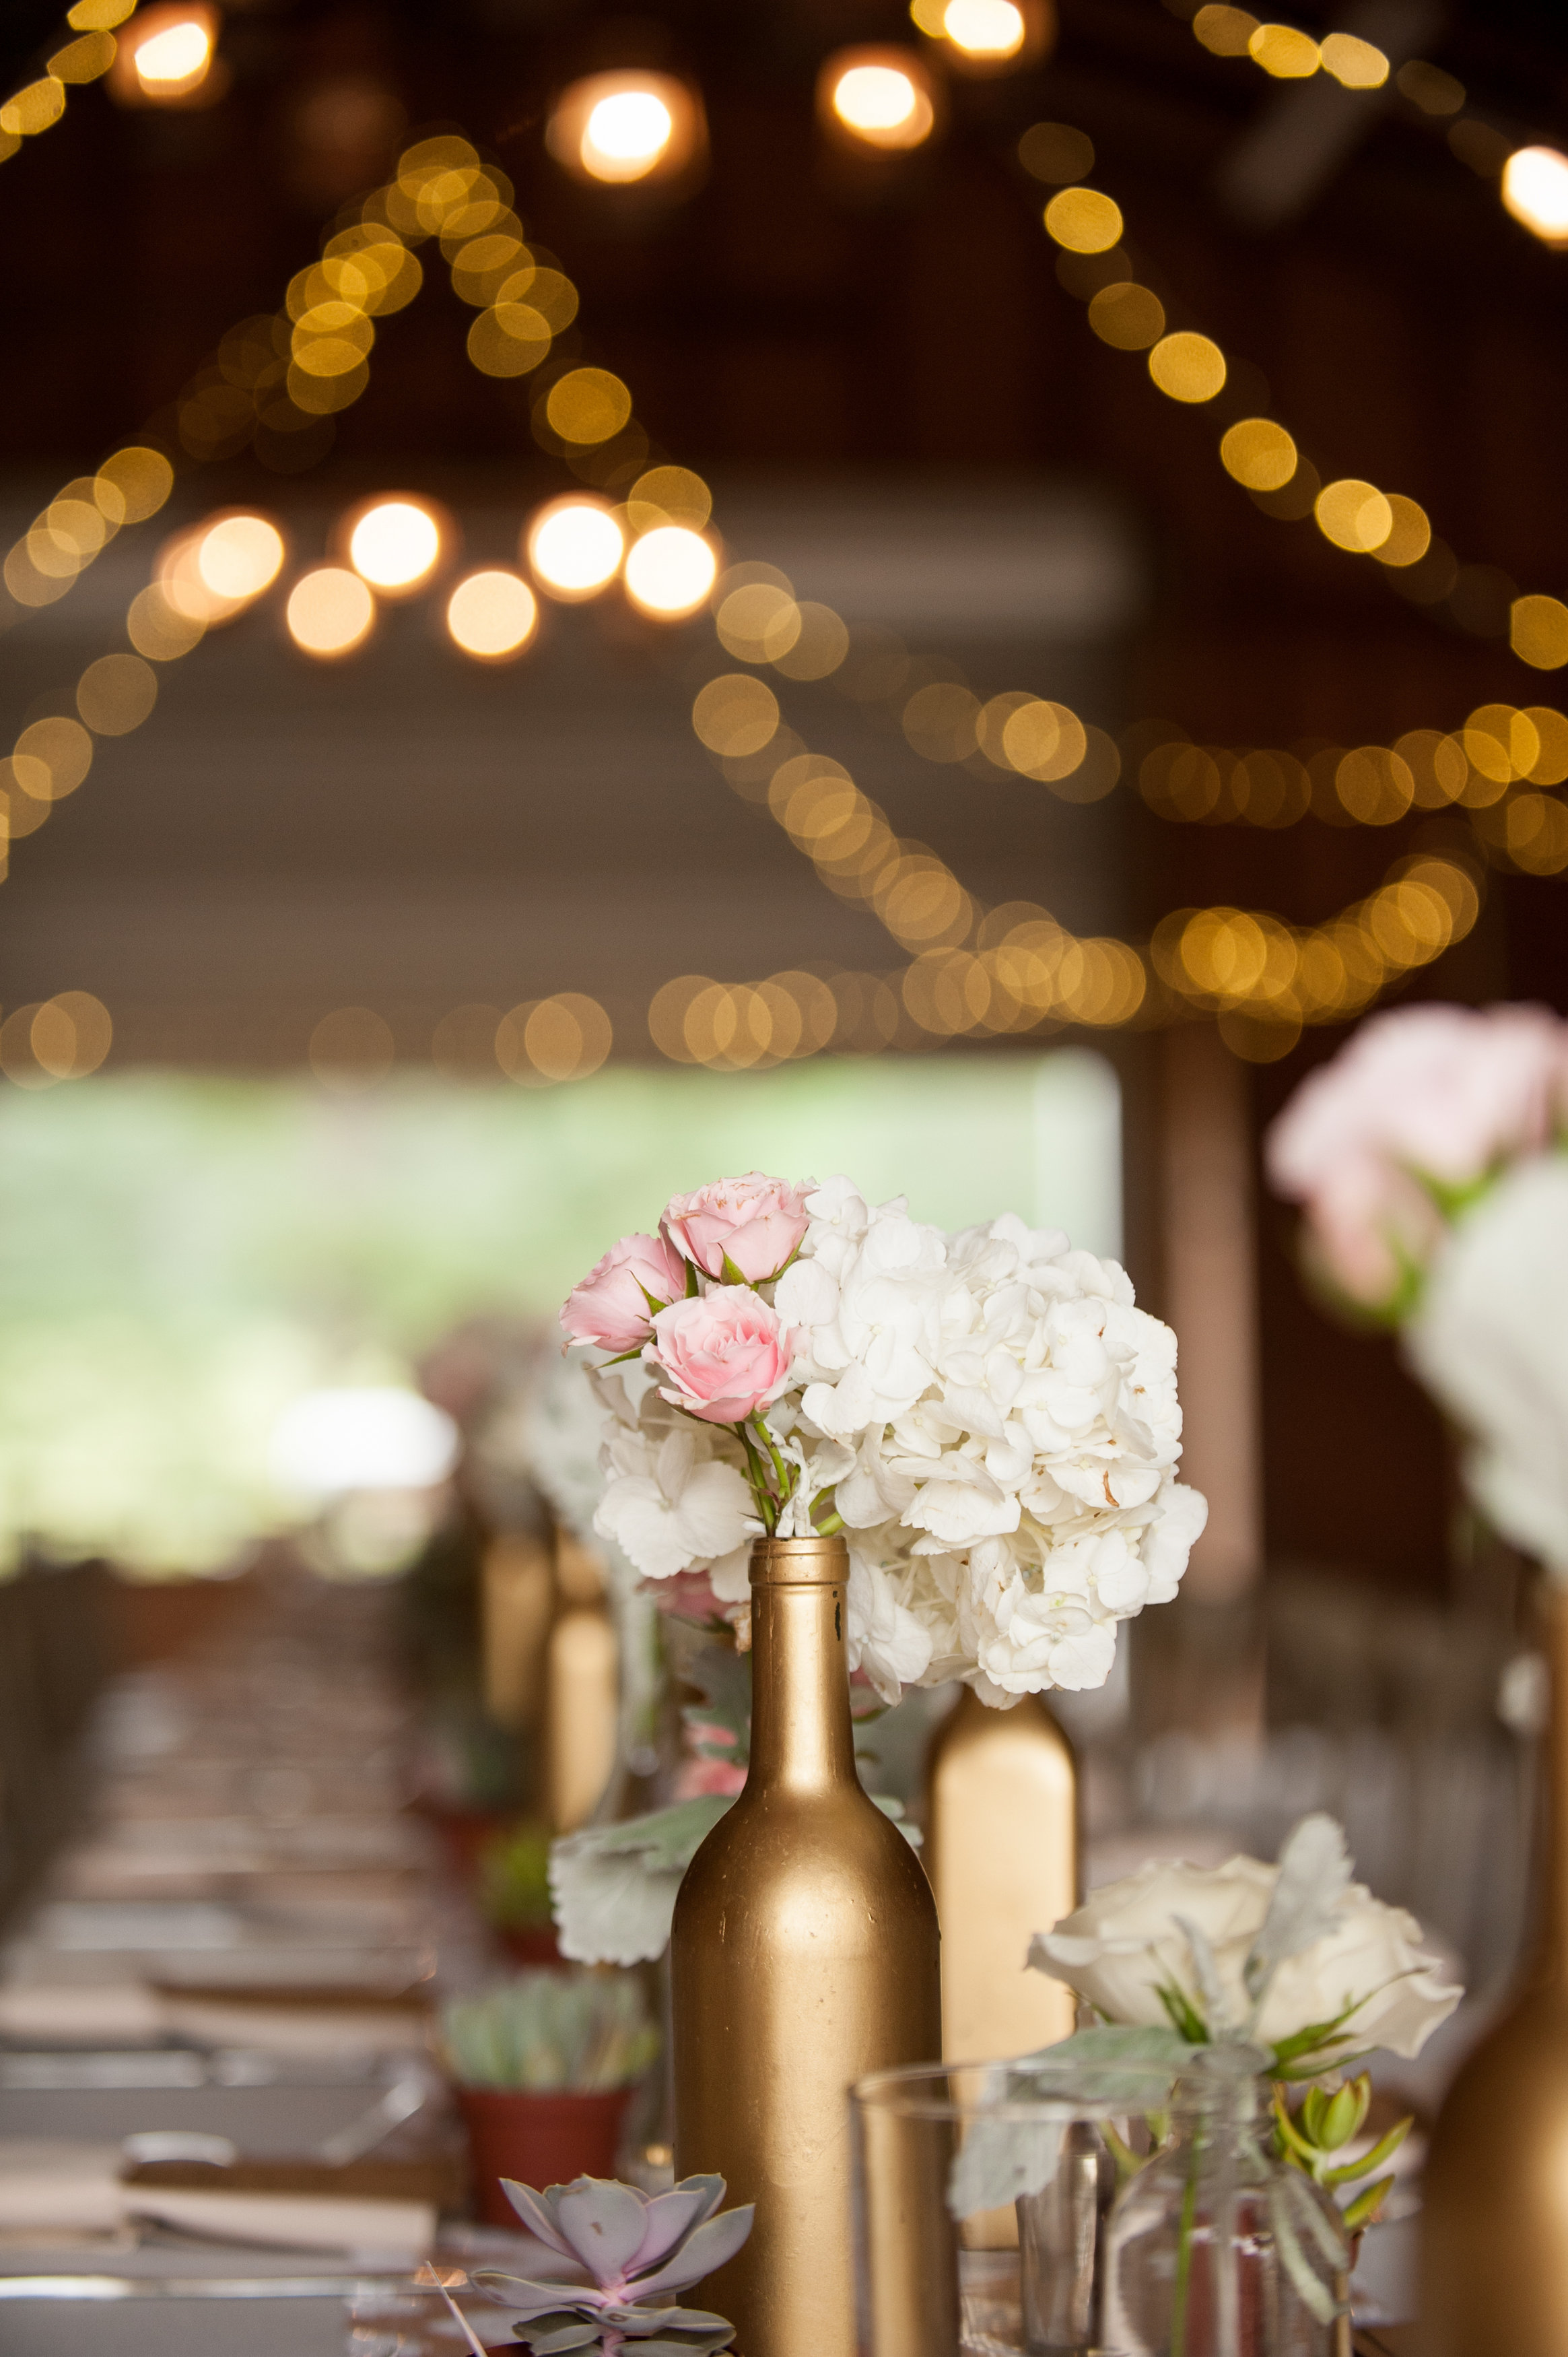 View More: http://scobey.pass.us/terrispencerwedding